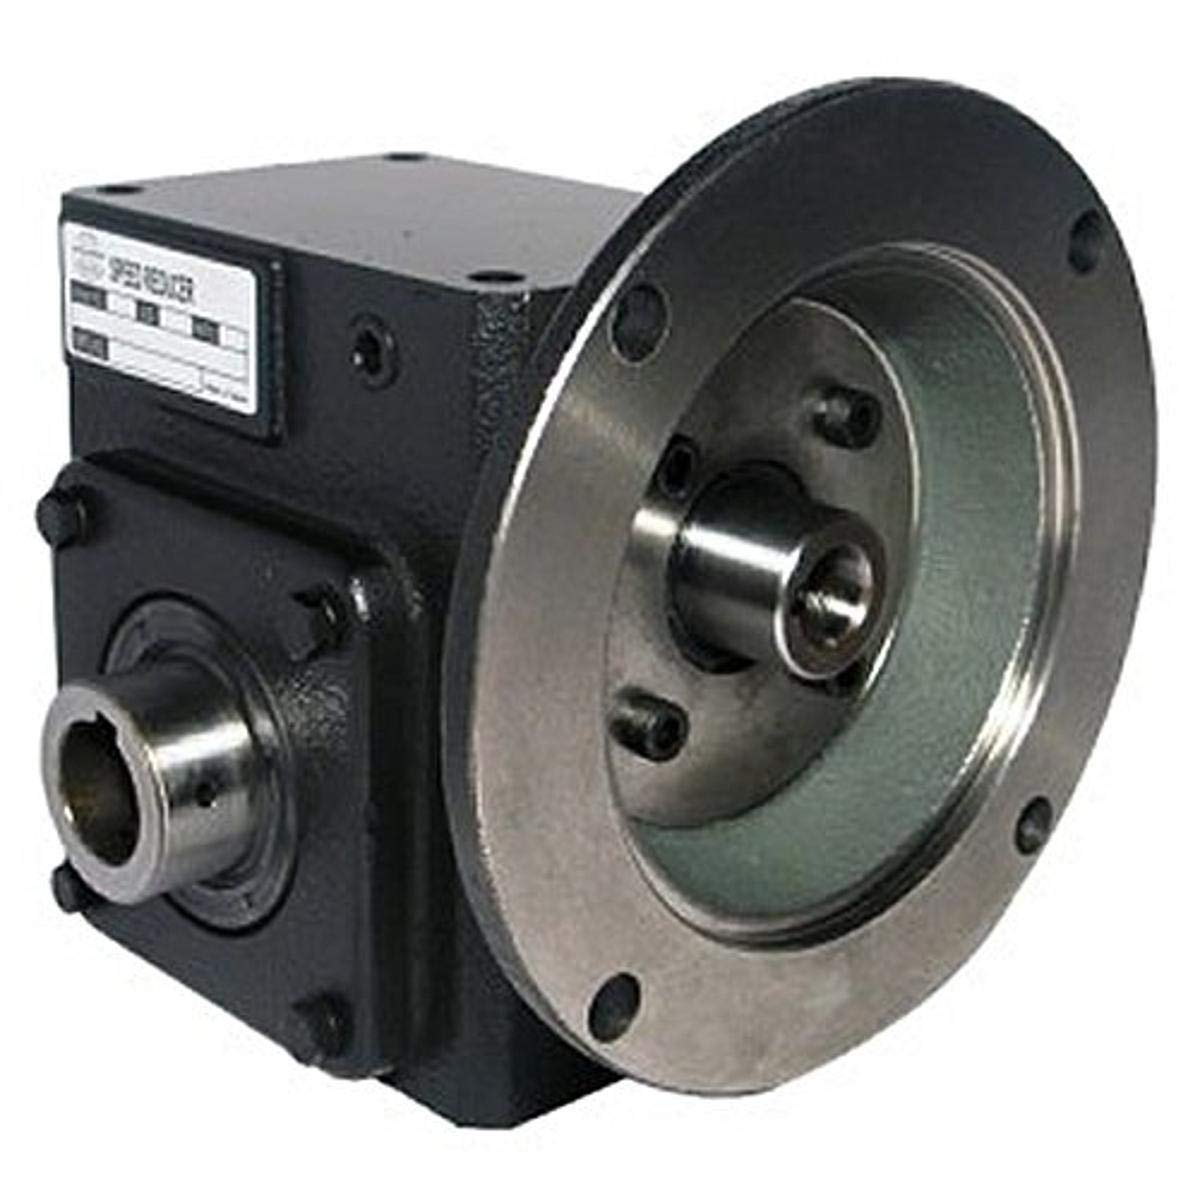 Worldwide Electric HdRF237-50/1-H-56C Worm Gear Reducers Flange Input, Hollow Bore Output, 50:1 Ratio, 35 Output RPM, 56C Frame, 2.37